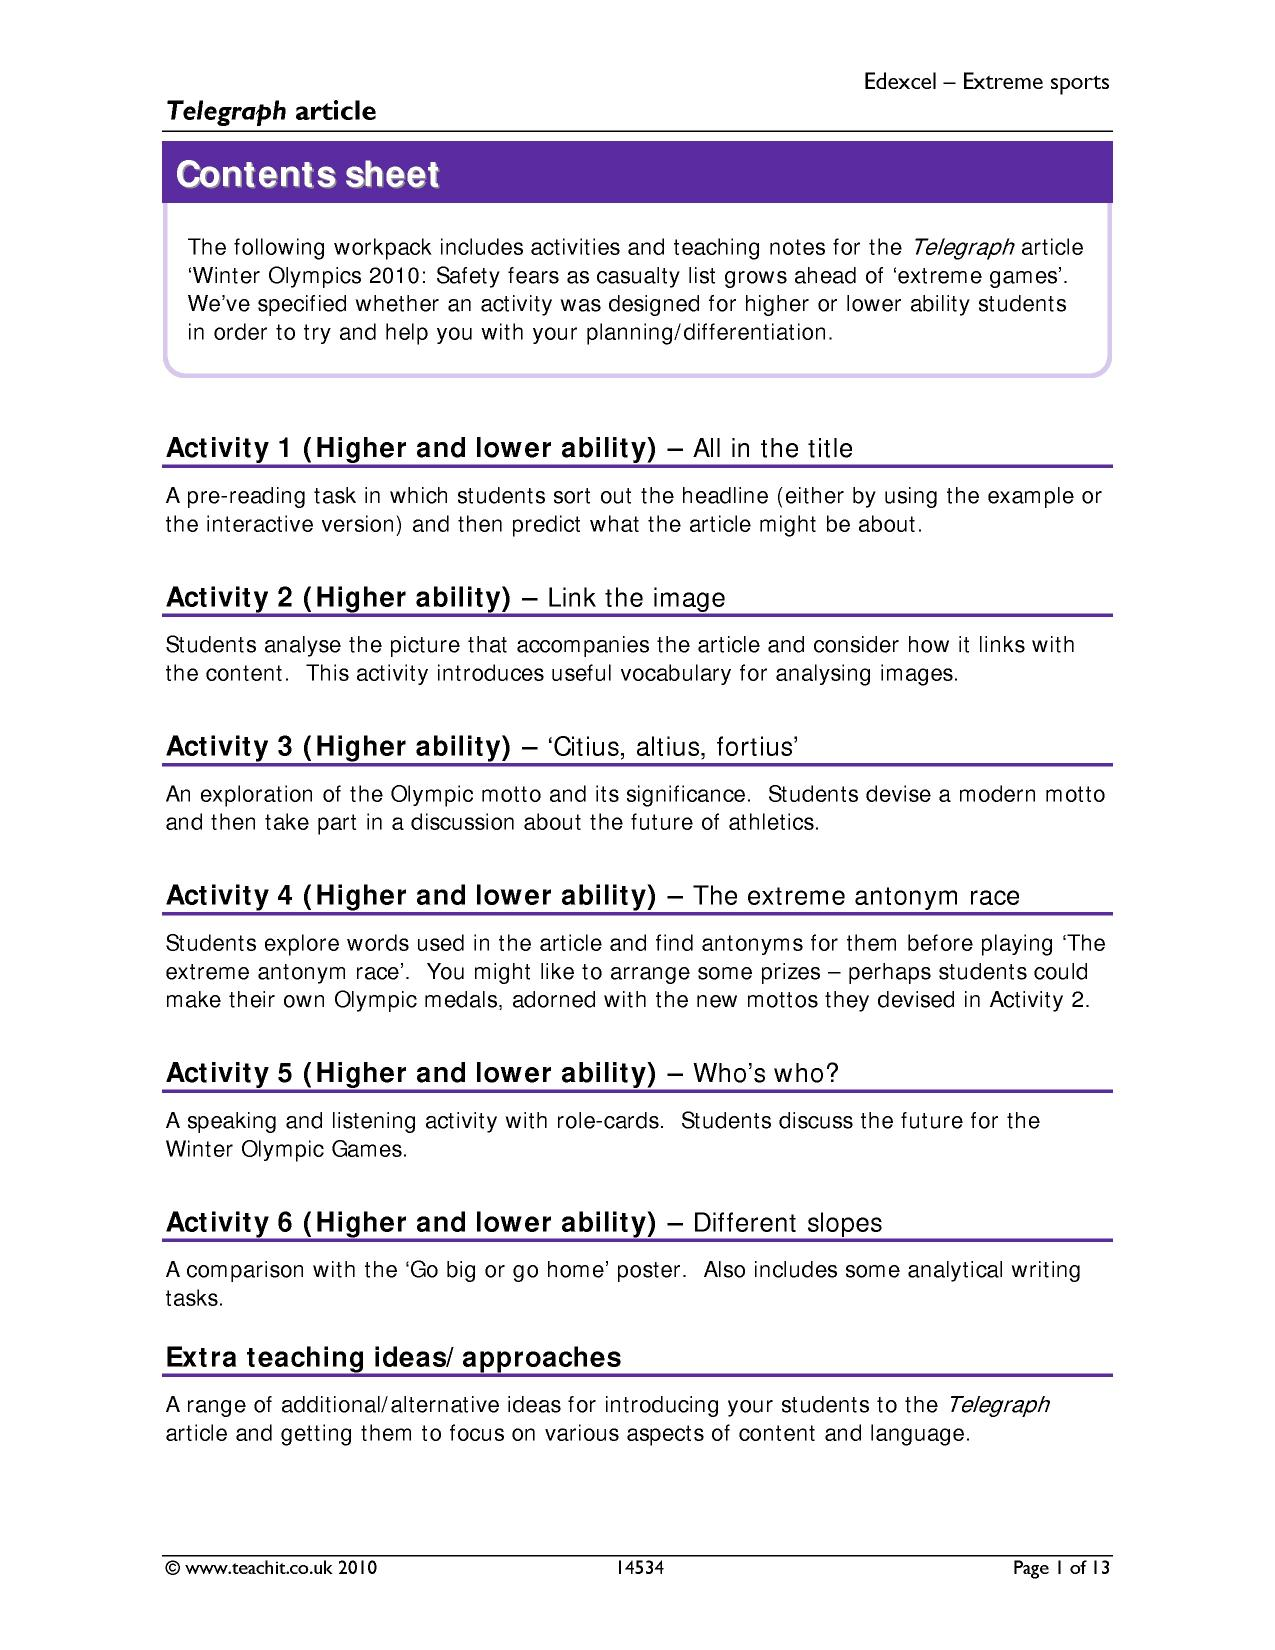 definition of happiness essay sample of a definition essay refugee essay refugee essay emma models of excellence refugees choco obam